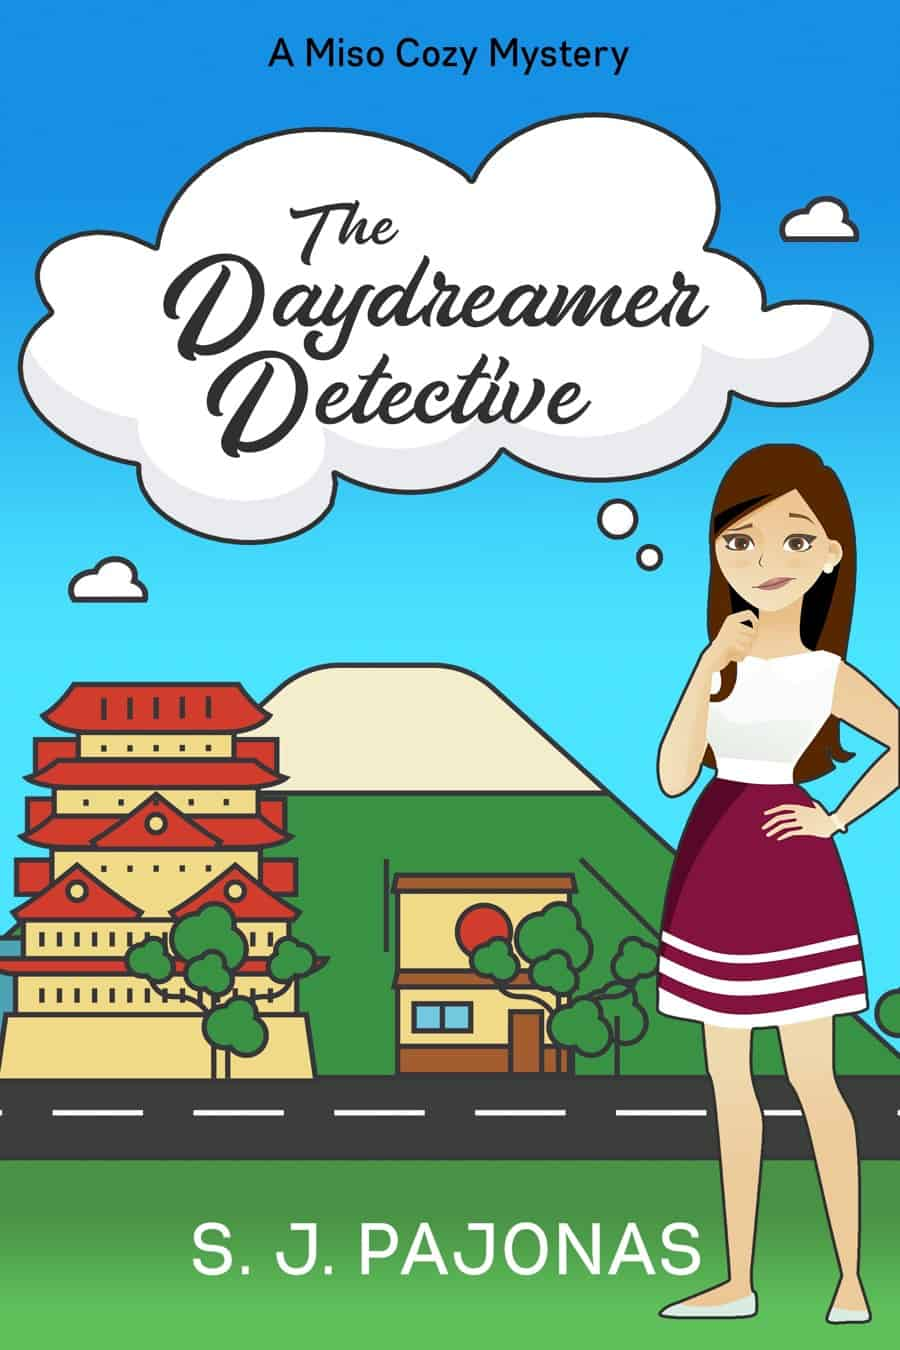 THE DAYDREAMER DETECTIVE is now free! Pick up this cozy mystery and solve mysteries with Mei, her family, and friends!